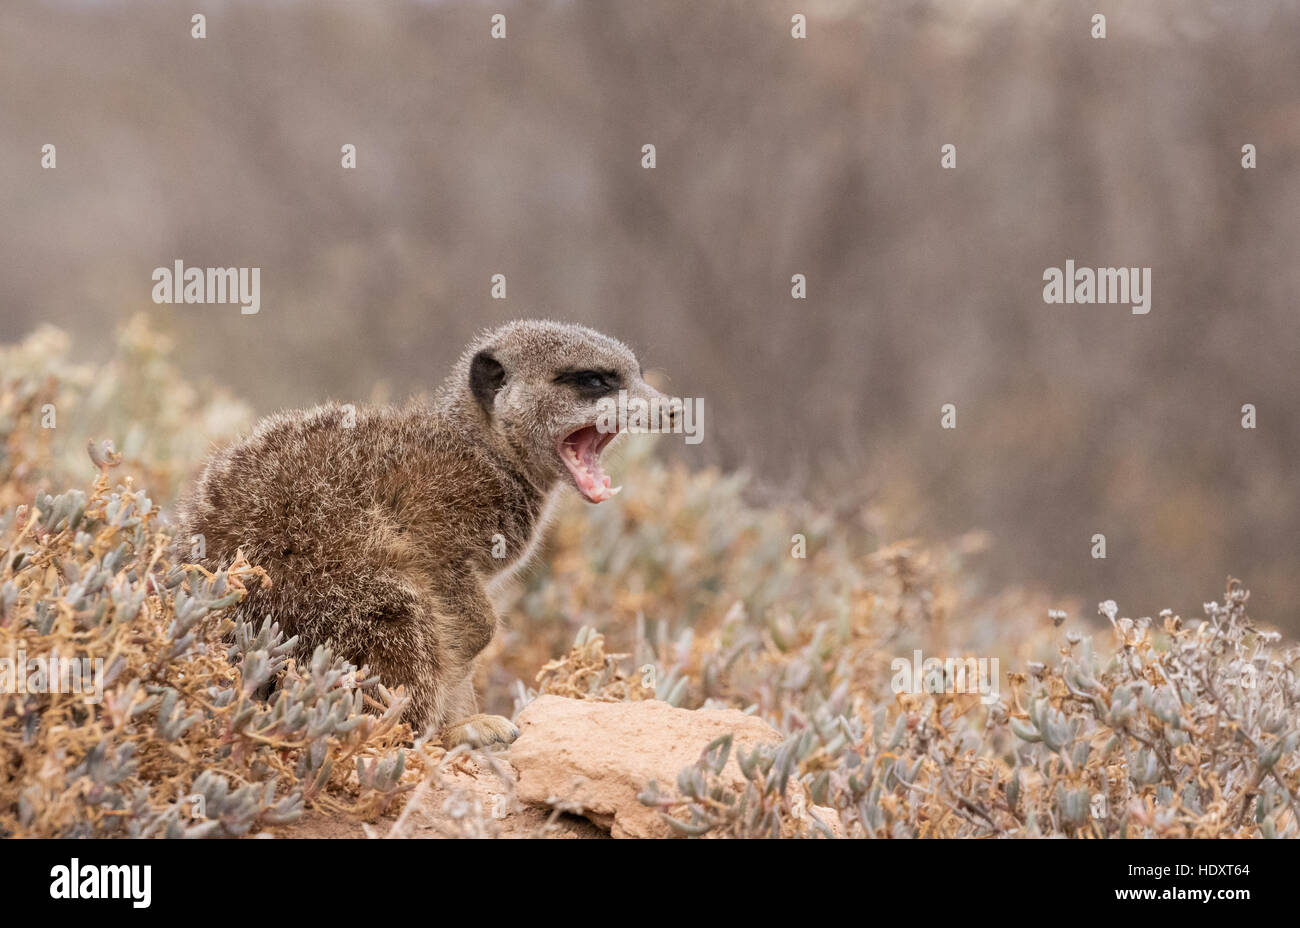 Meerkat ( Suricata suricatta ) snarling, Oudsthoorn, the Karoo, South africa - Stock Image